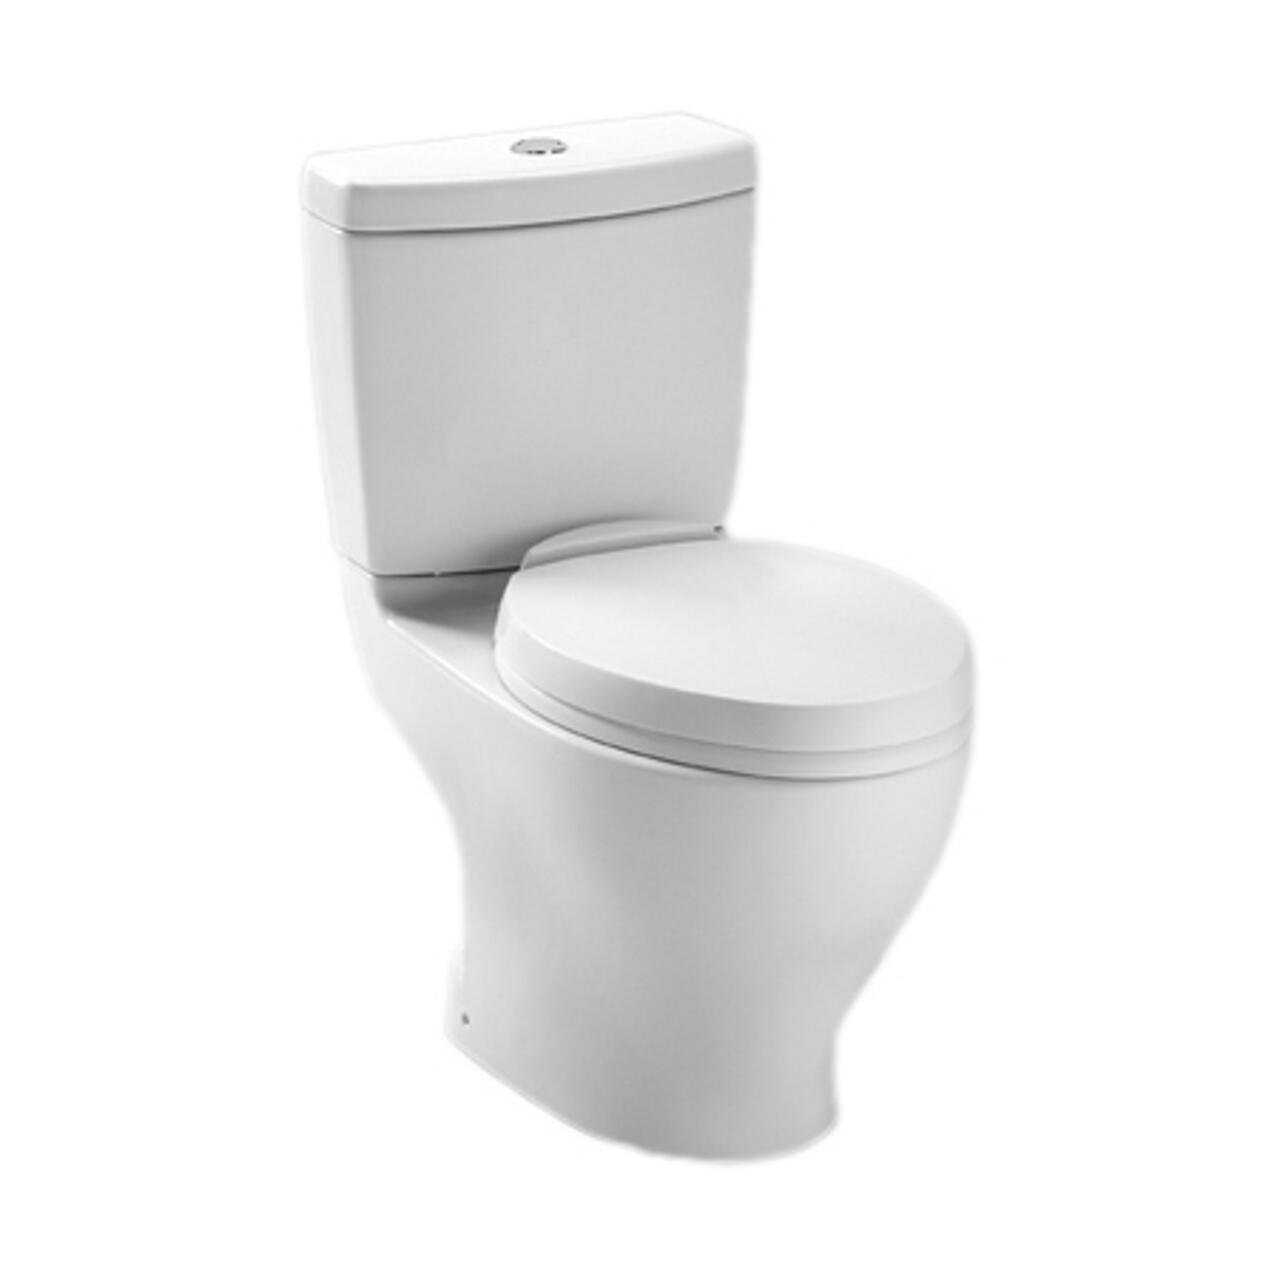 Best Toto Toilet Reviews Editors Pick Of The Year 2019